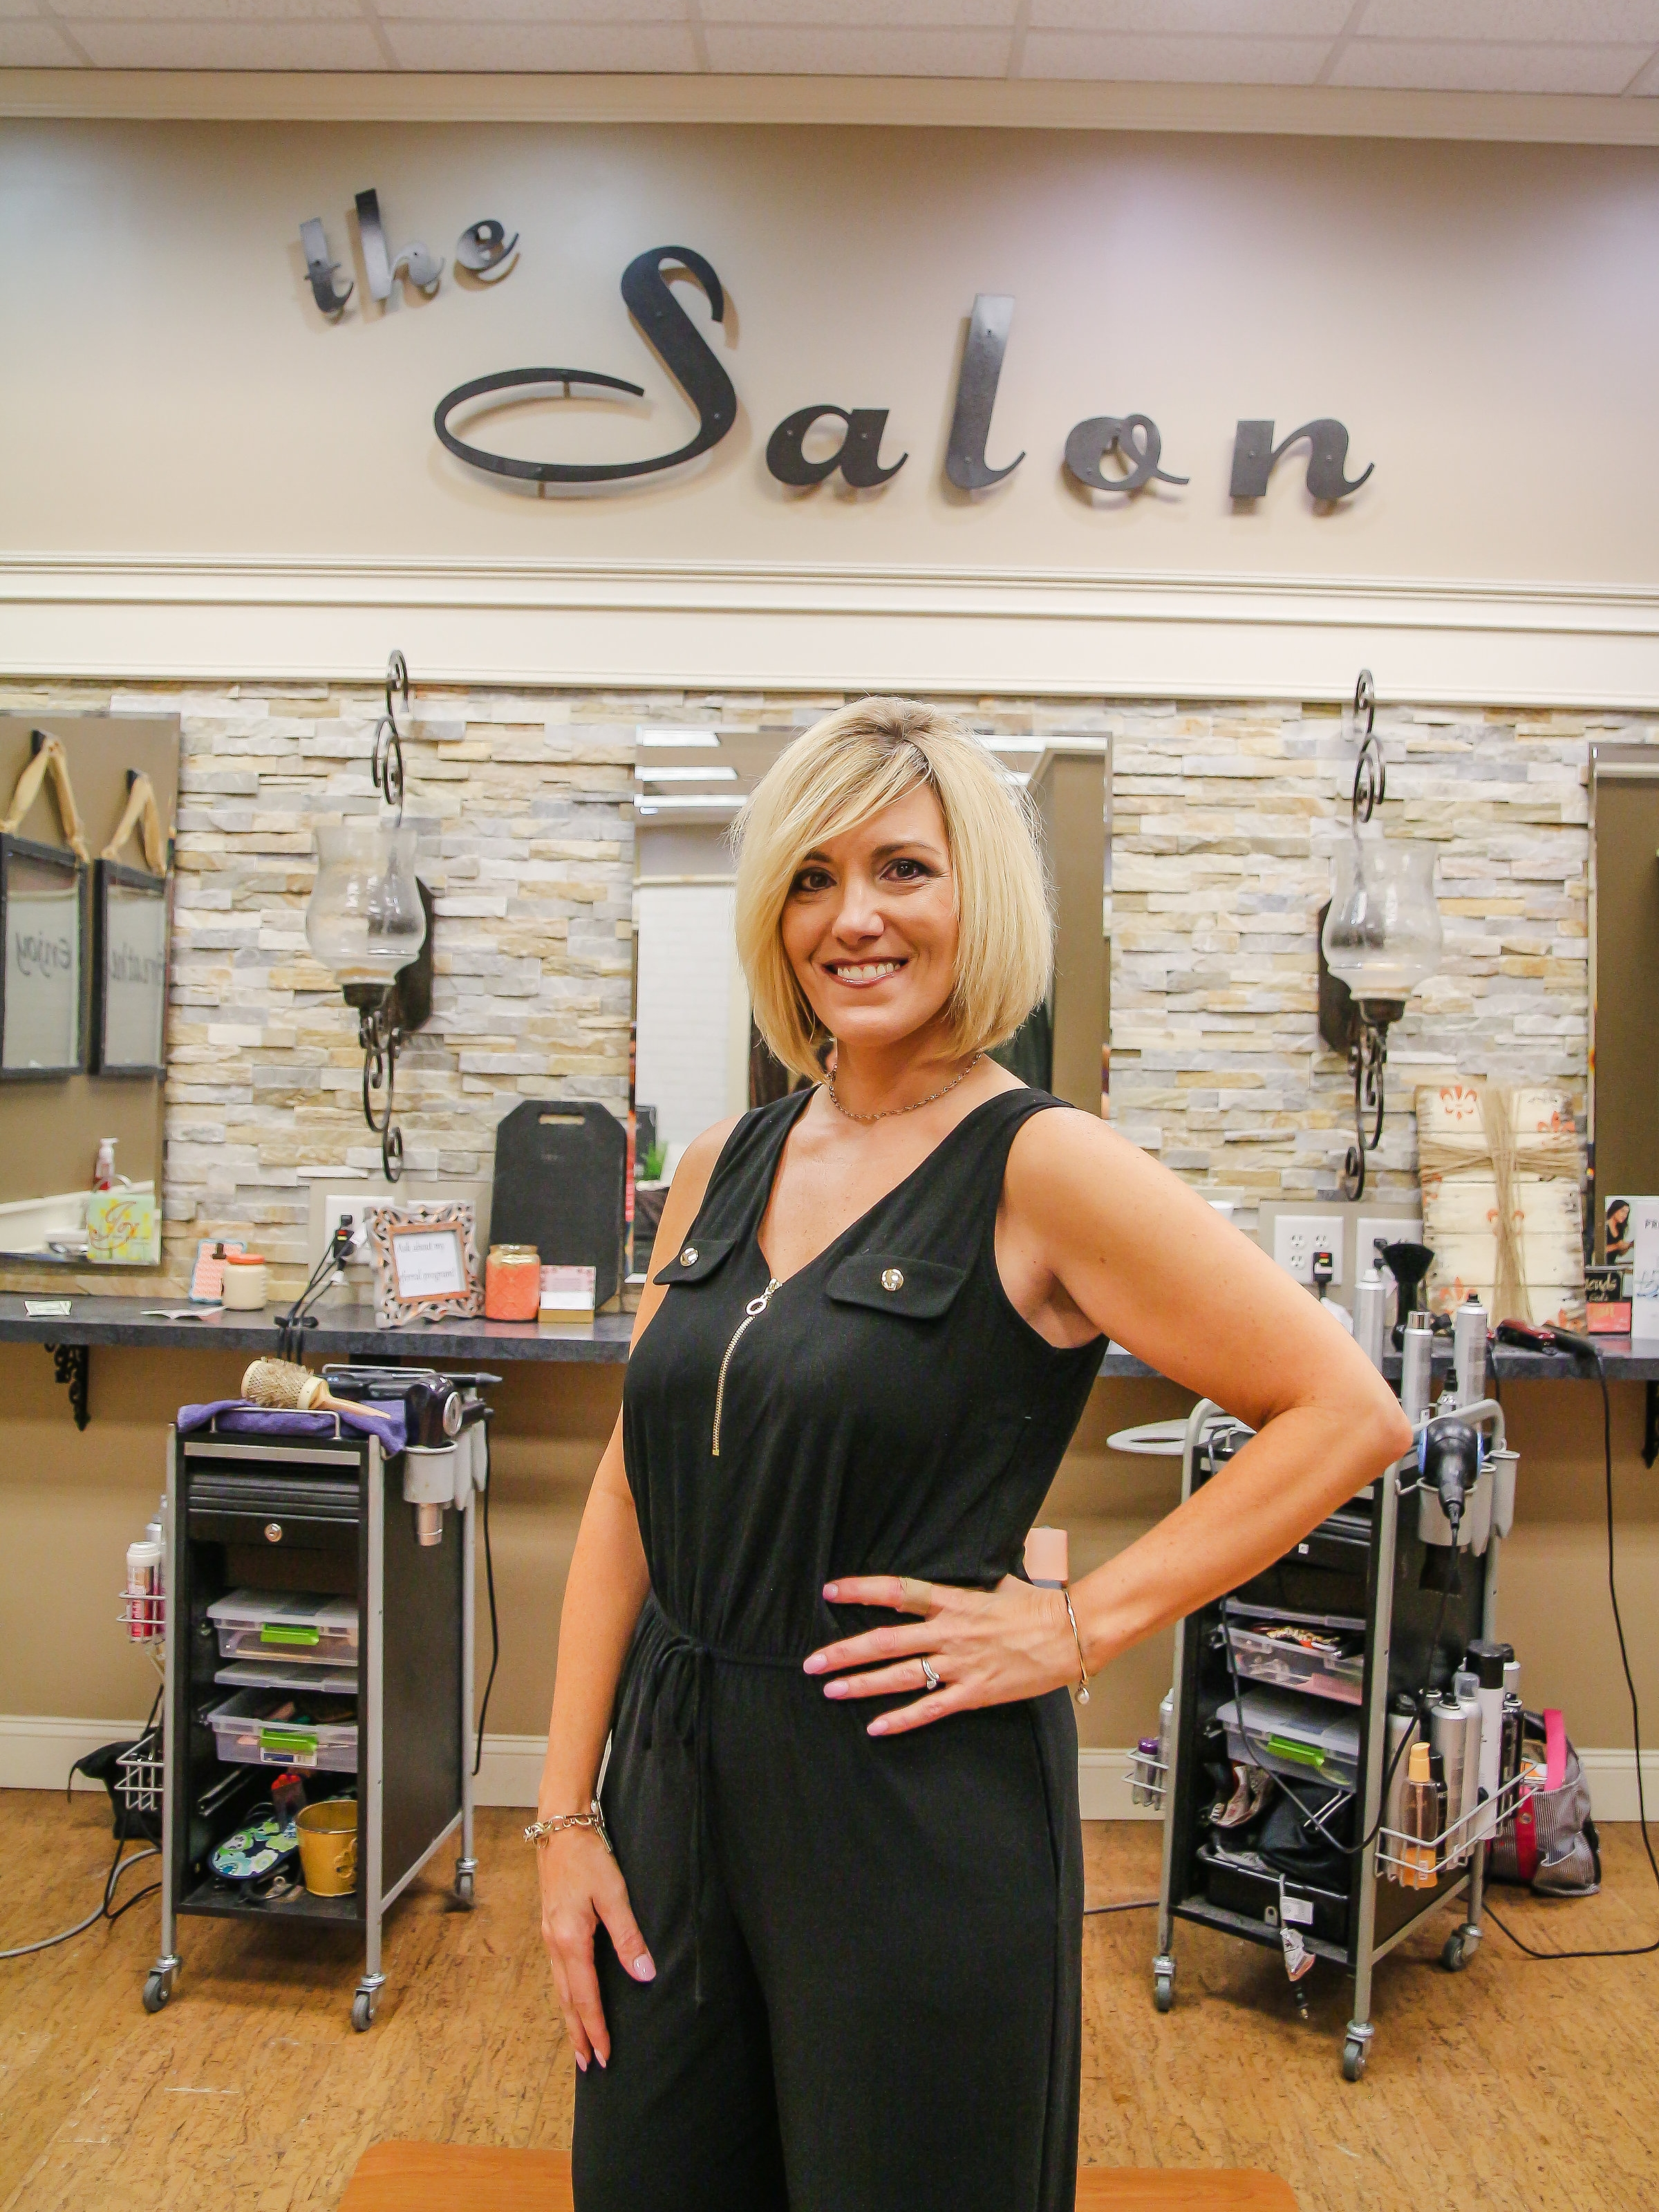 Angie - Stylist, Colorist  Location : Alps Village Shopping Center  Work Schedule : Tues, Wed, Thurs, Fri